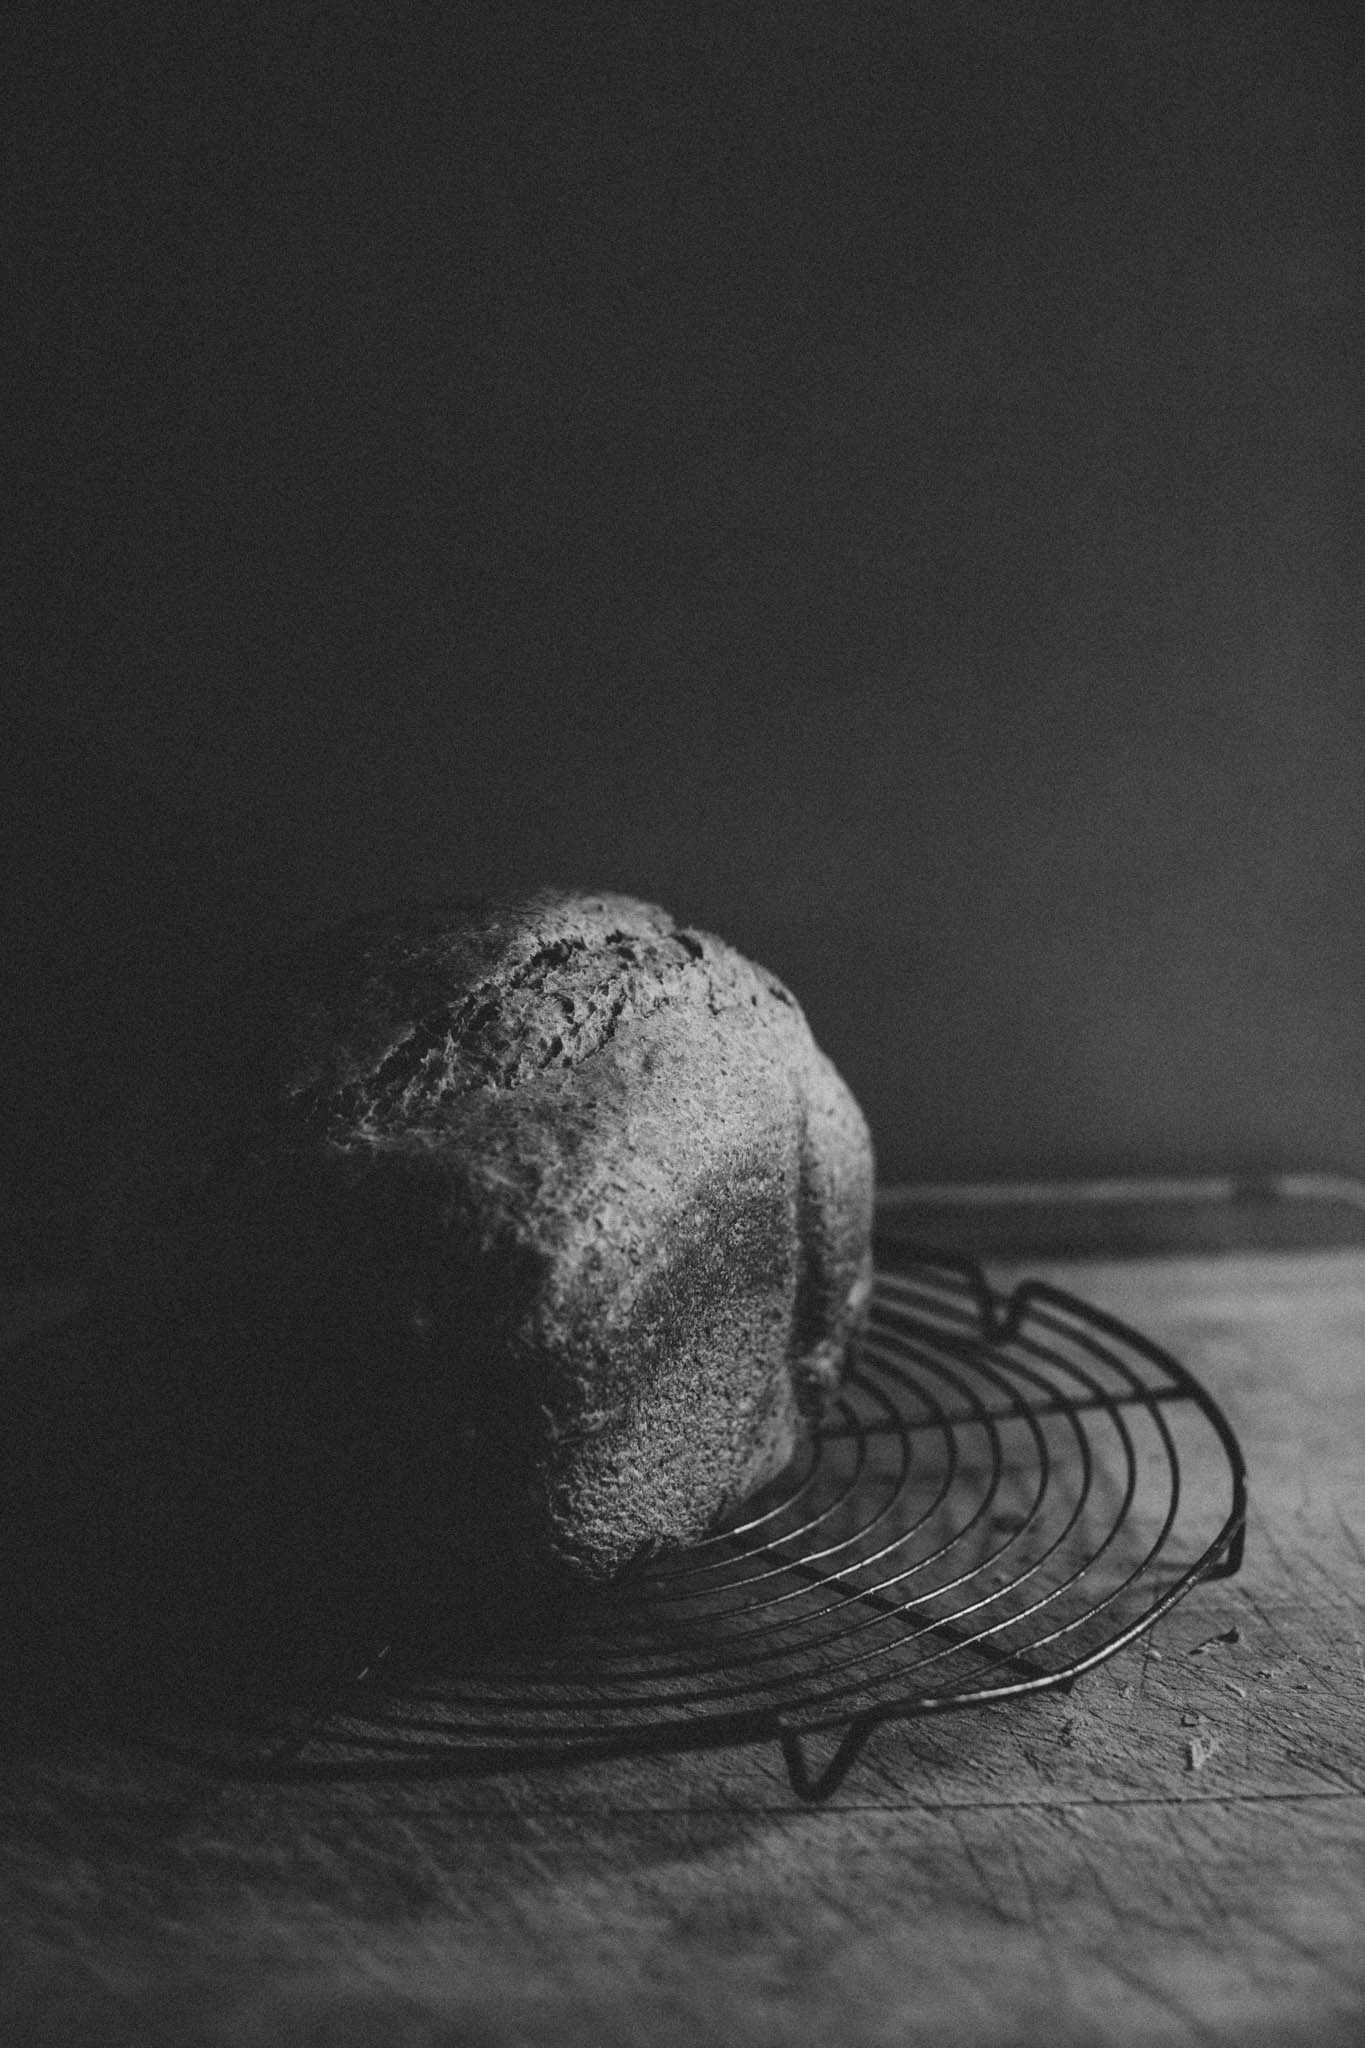 Panasonic SD-2500 bread maker review // Retreat blog - a food and lifestyle blog. Photos by Emma Gutteridge